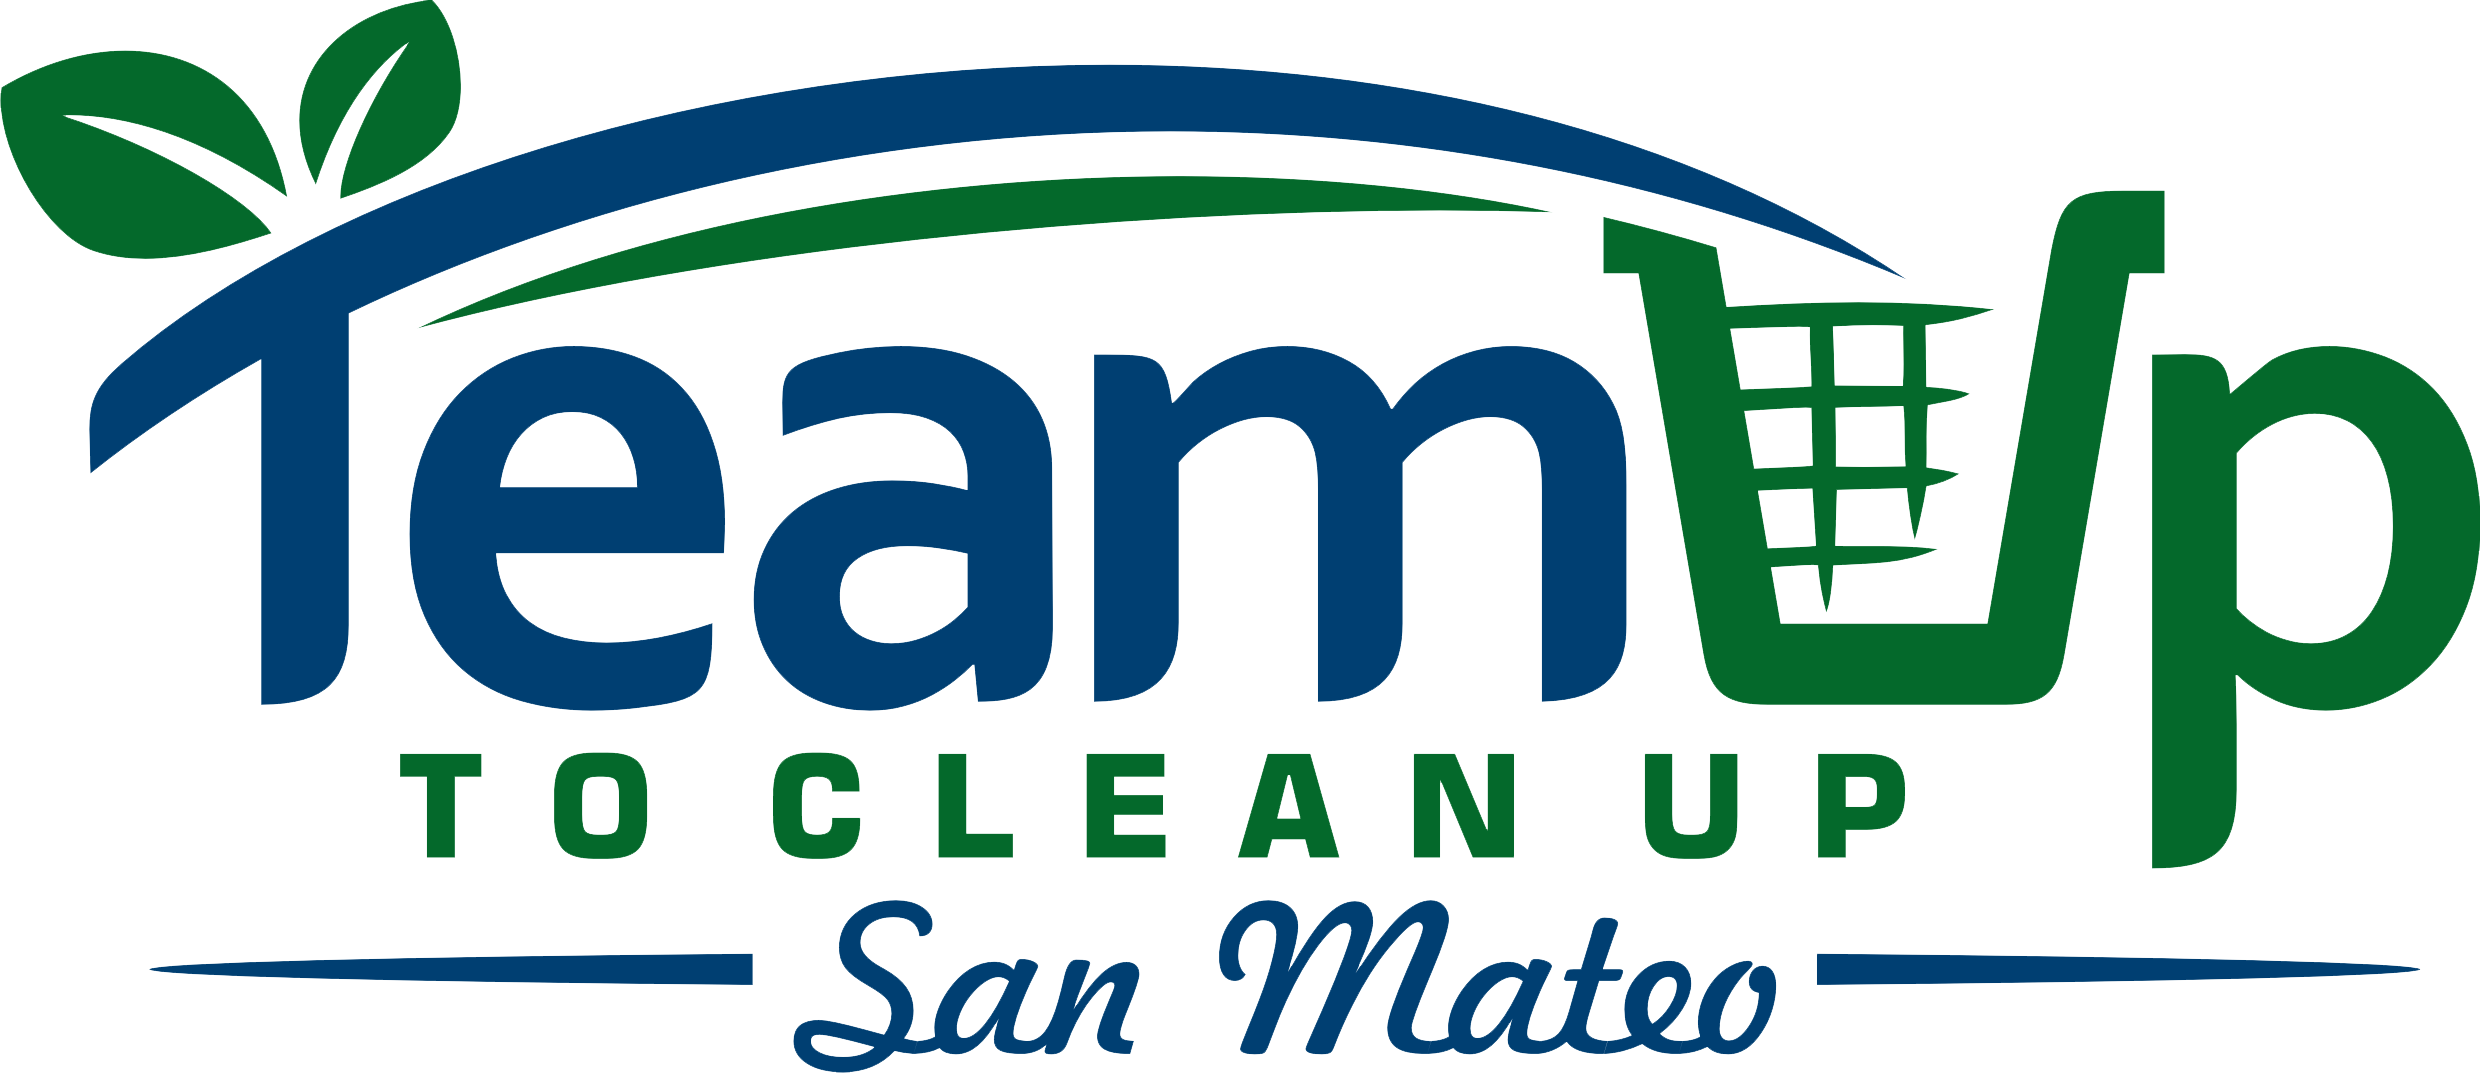 Team Up To Clean Up San Mateo Colour.png